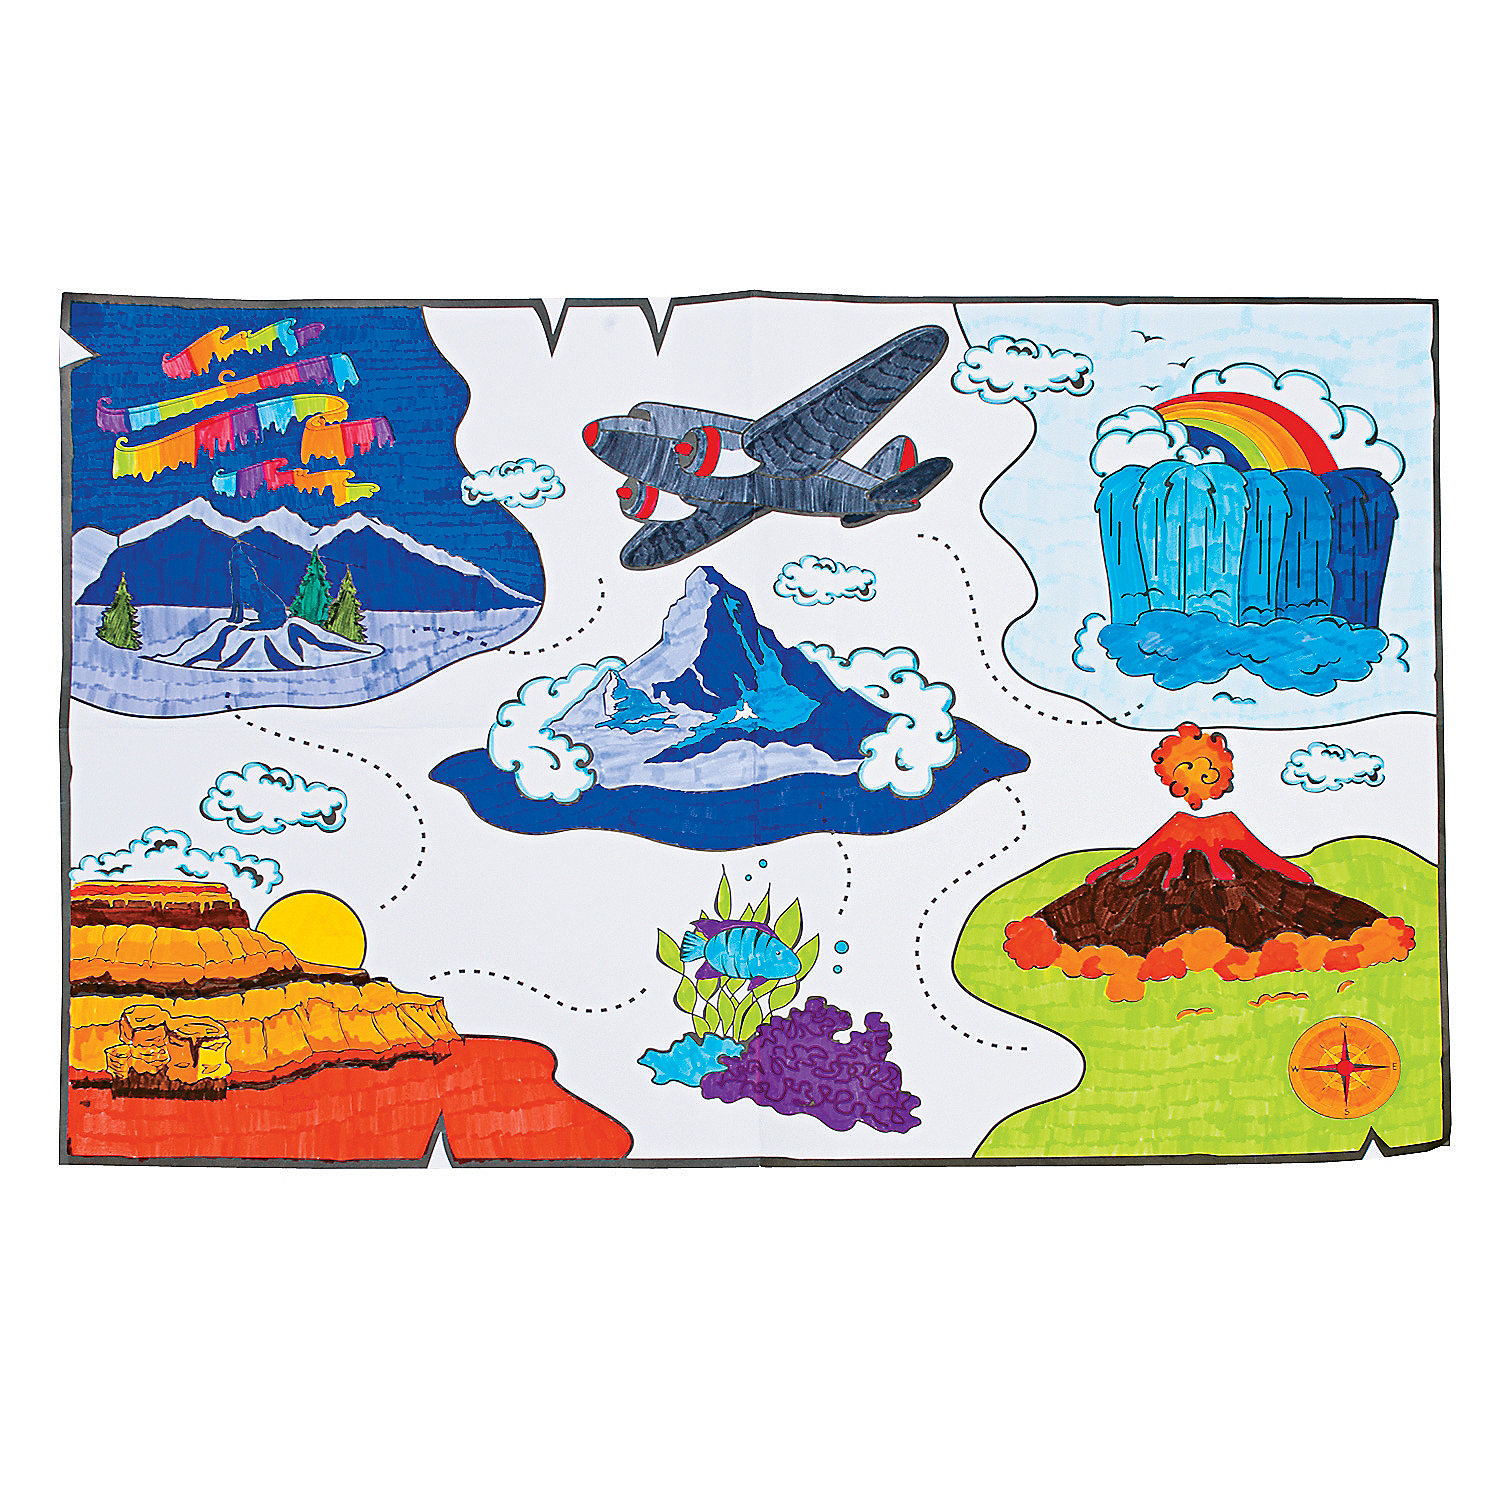 Color your own awesome adventure classroom mural for Classroom mural